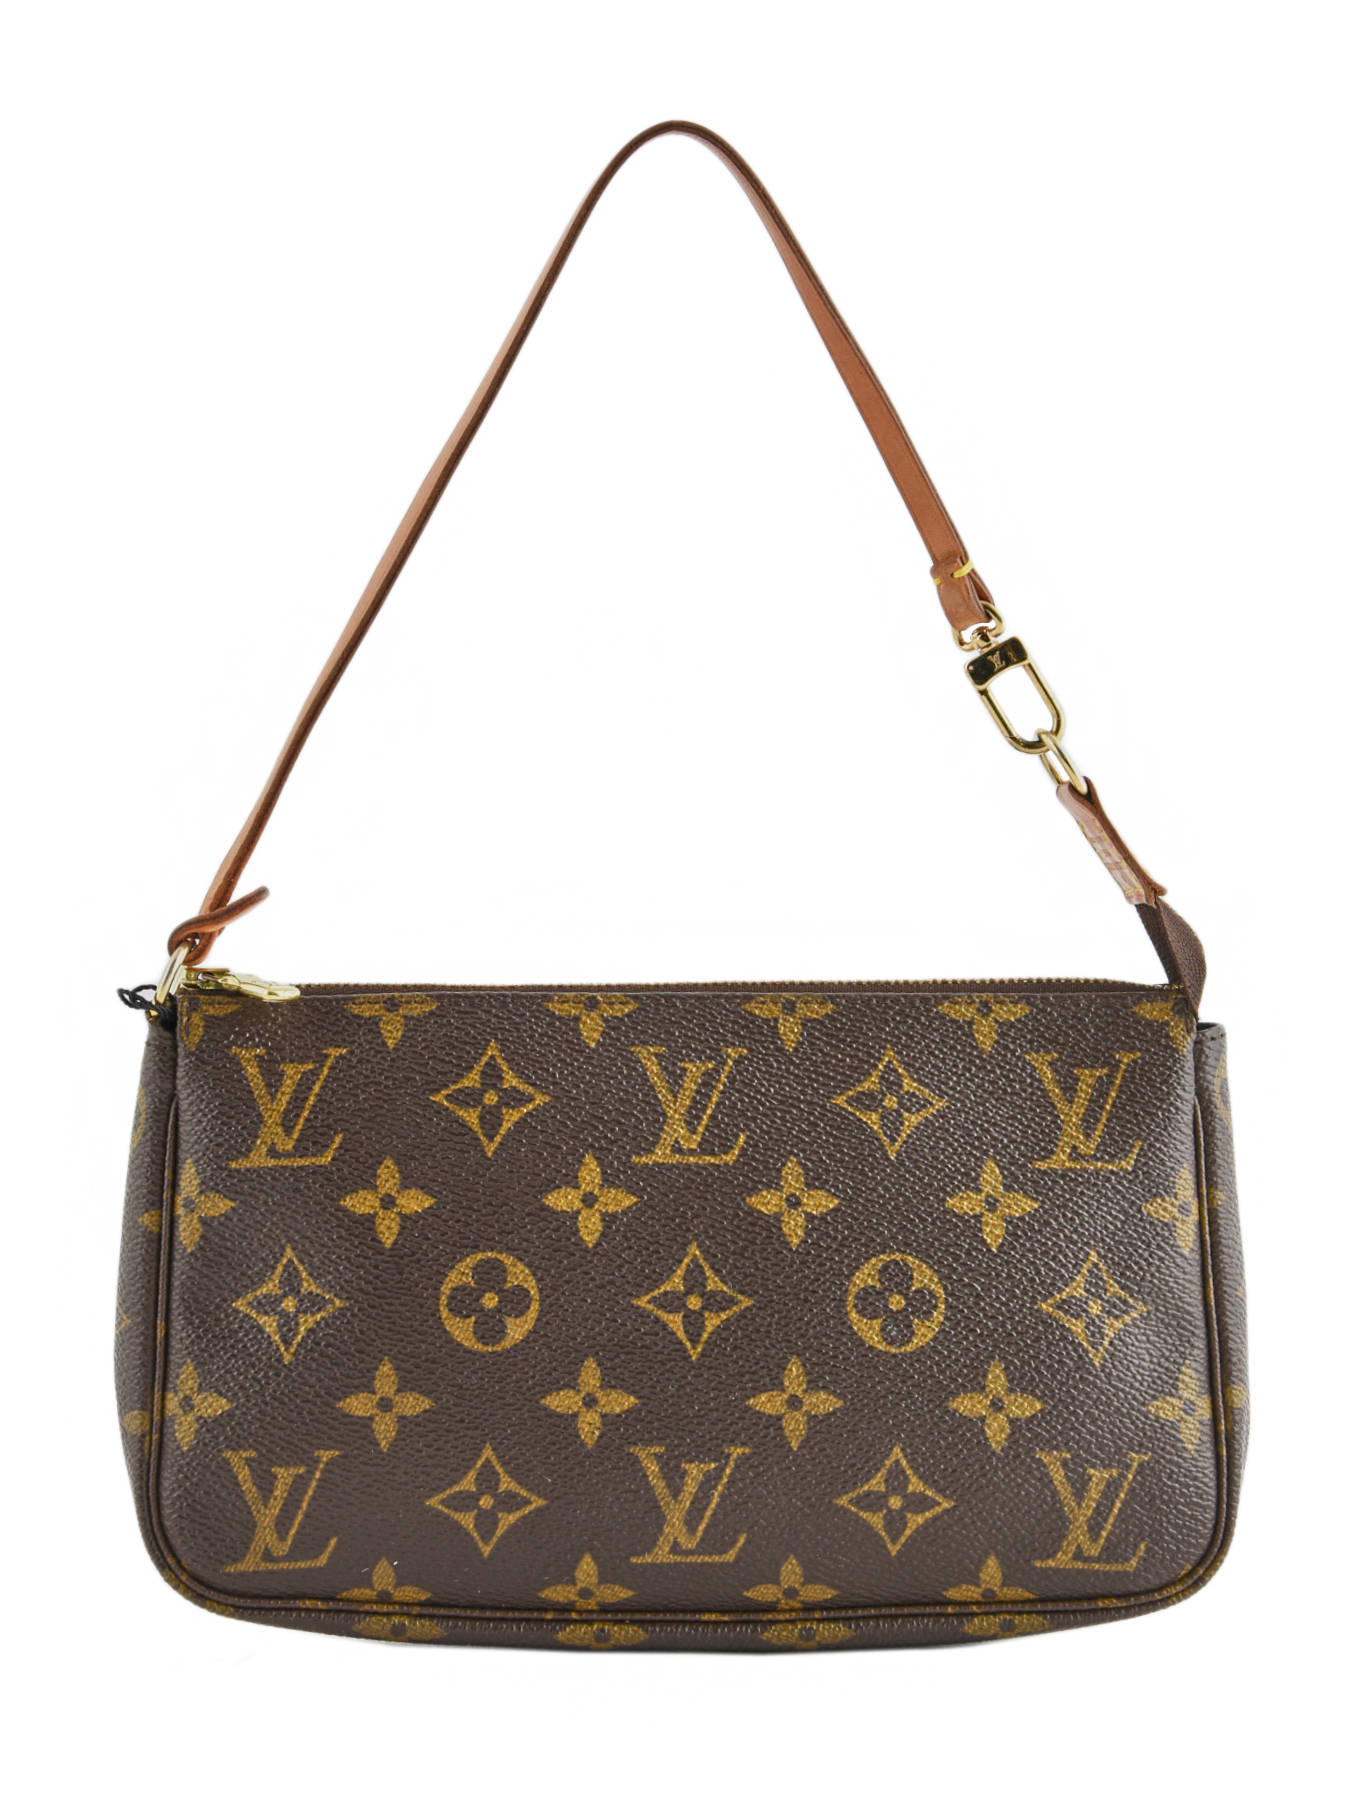 ... Mini-sac D occasion Louis Vuitton Pouch Monogrammé Brand connection Marron  louis vuitton ... 9a05887bb65